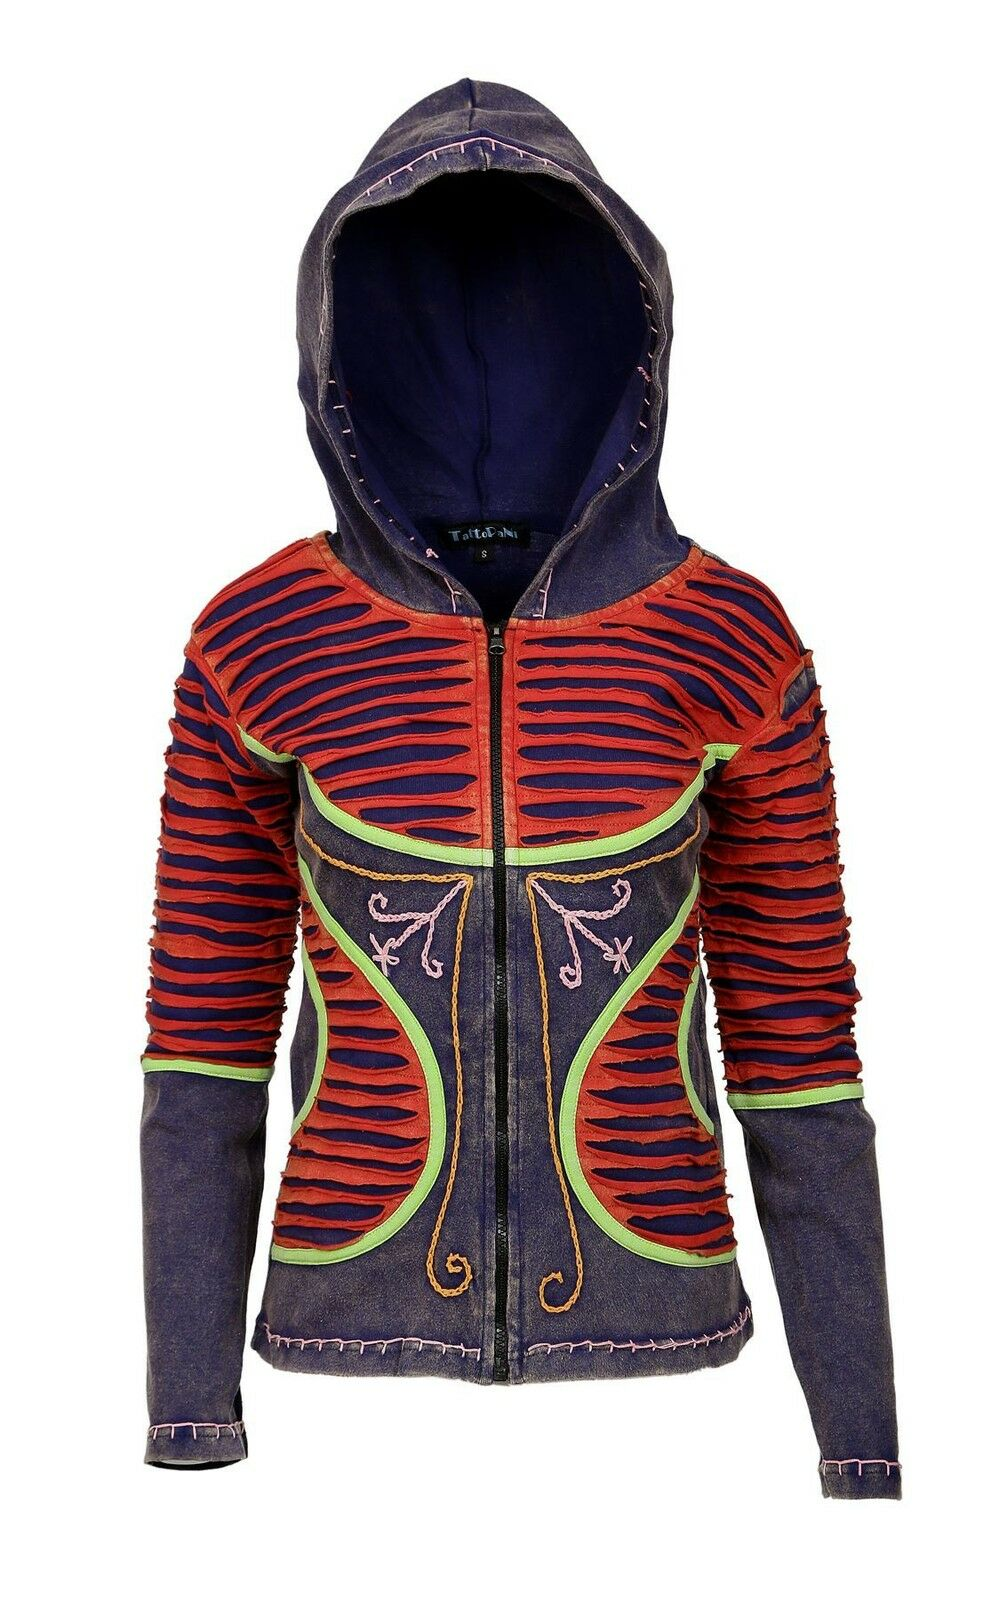 WOMEN MULTIcolorD STONE STONE STONE WASH COTTON CARDIGAN WITH ATTACHED HOOD 0529f9